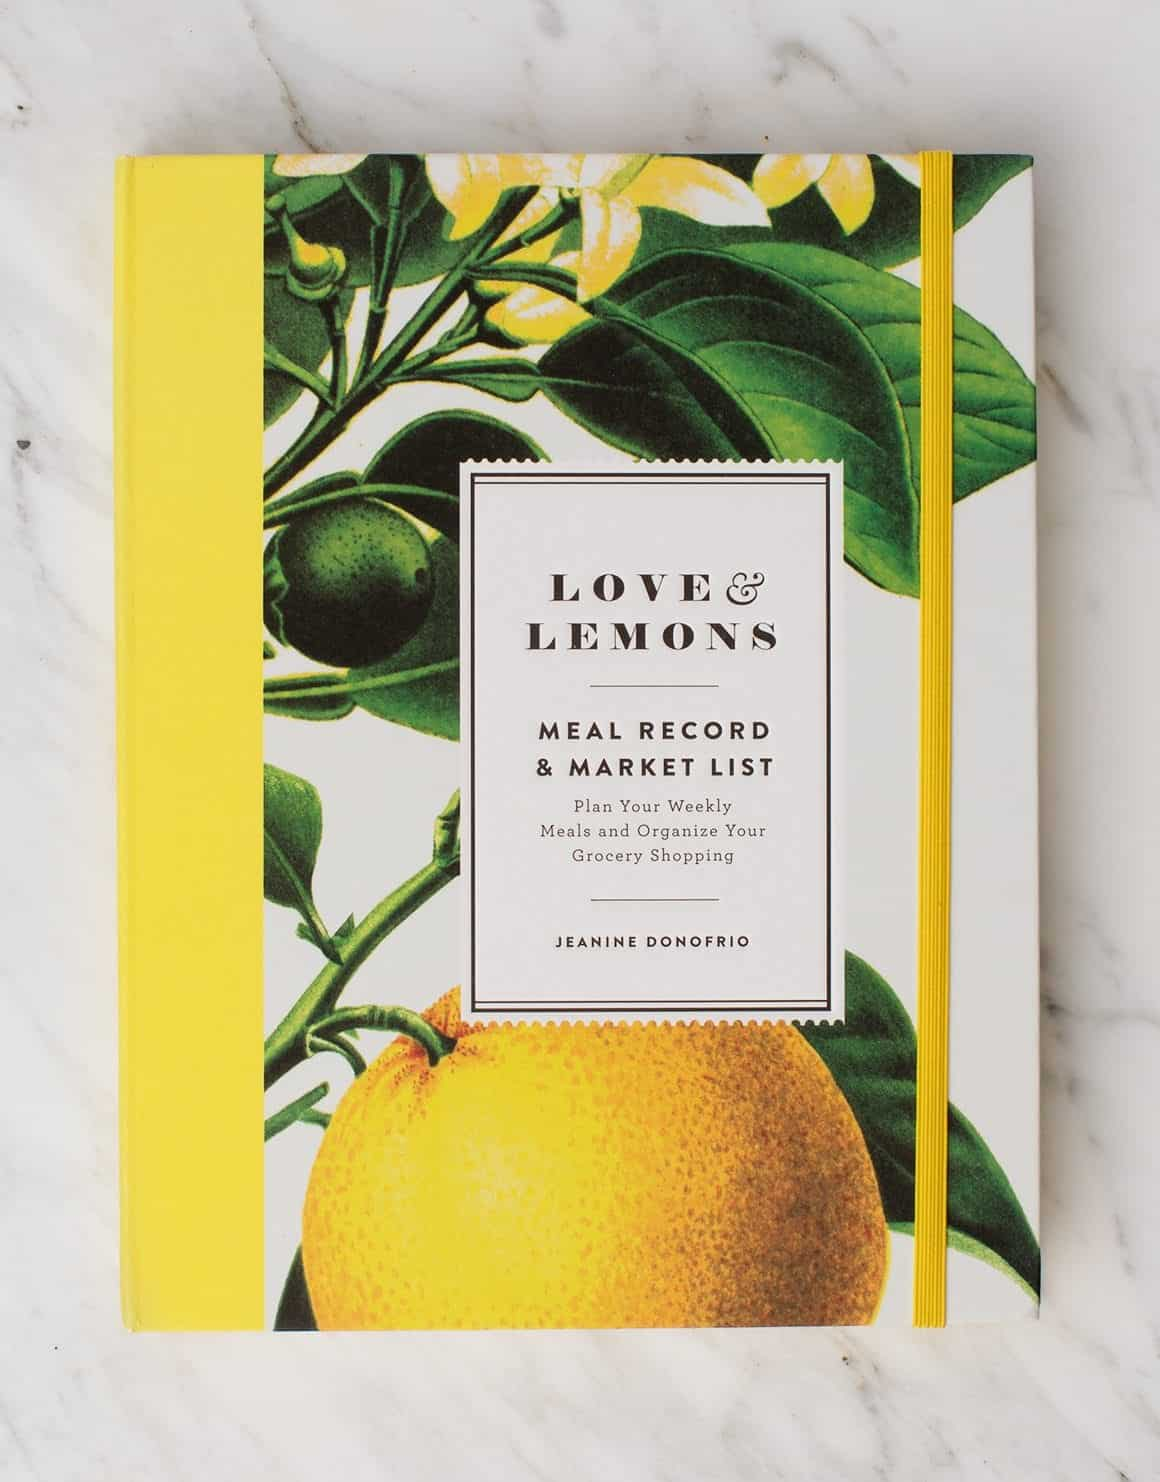 The Love & Lemons Meal Record & Market List